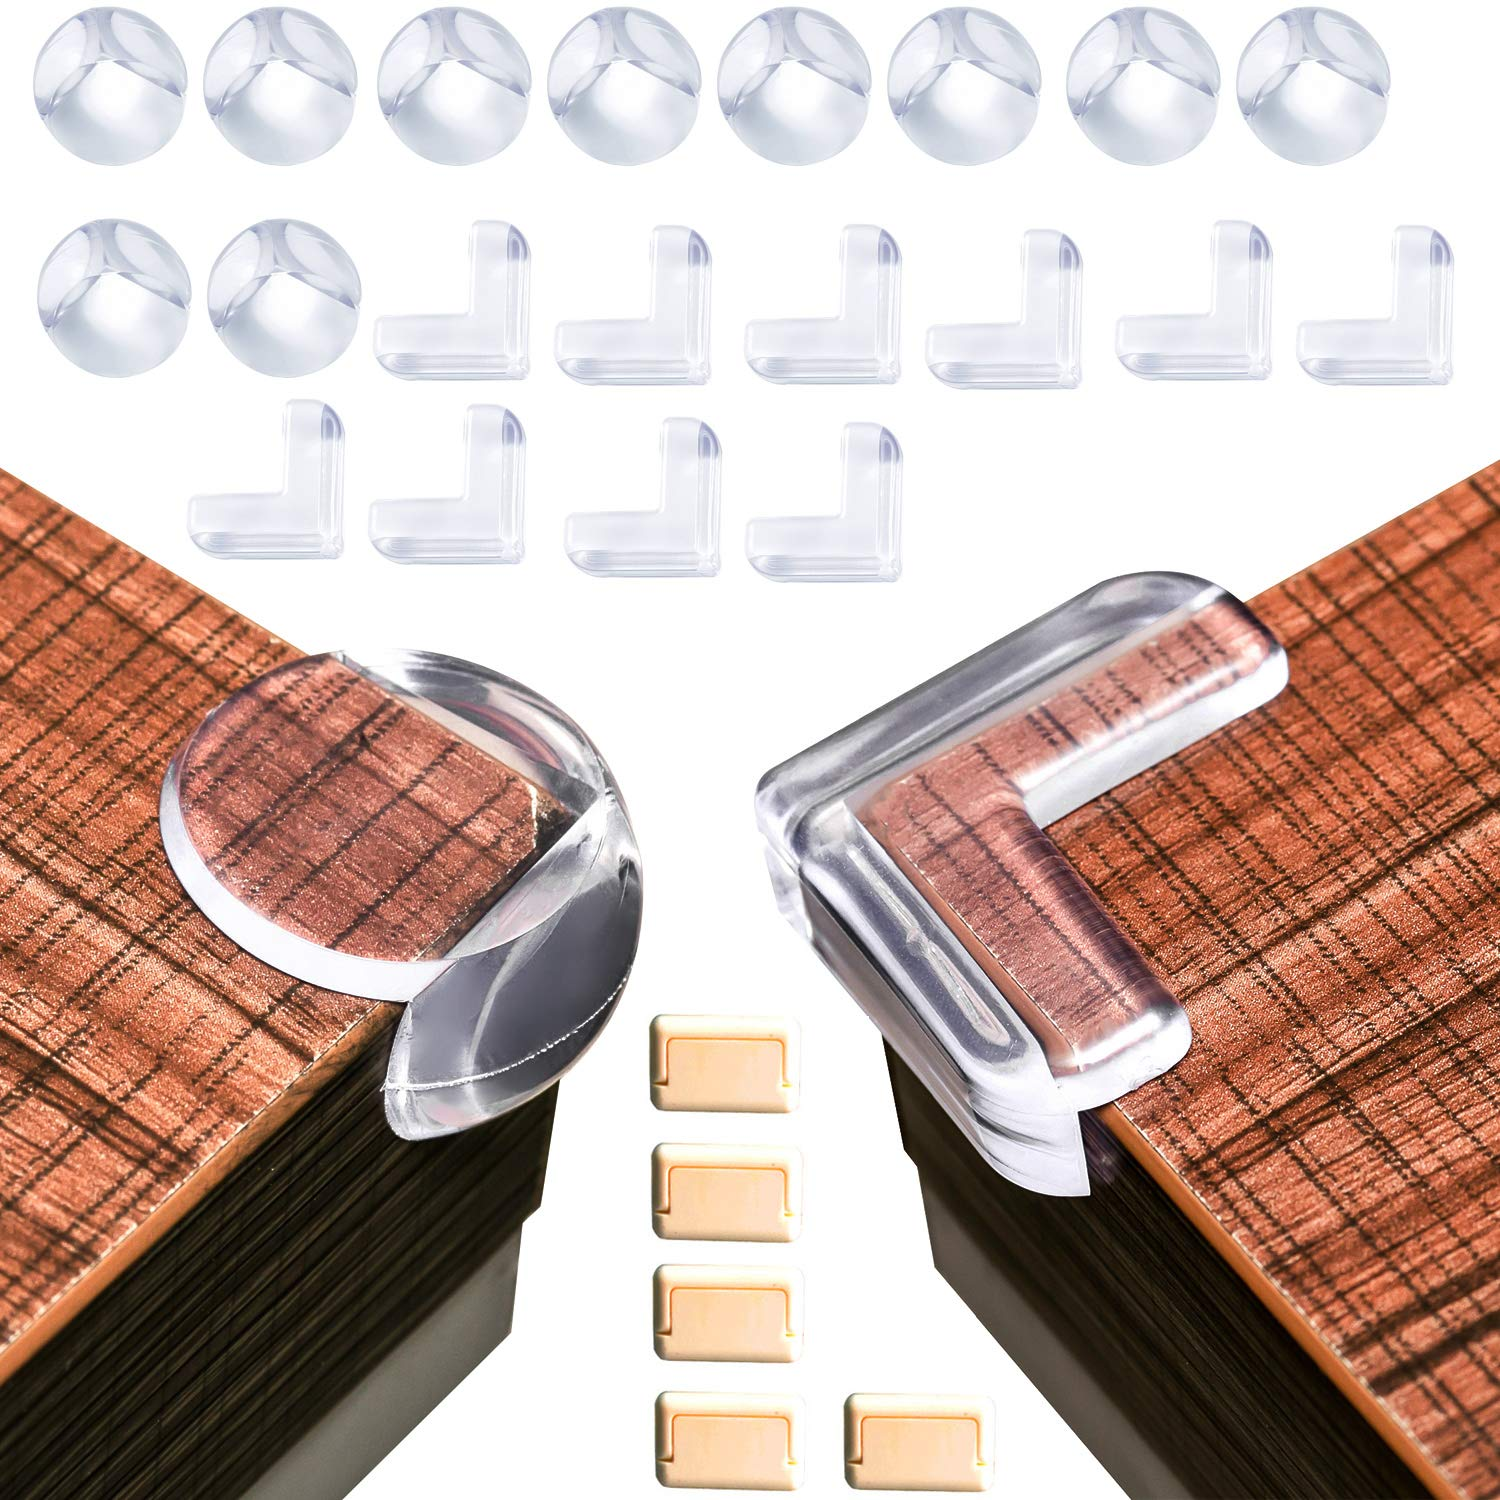 20Pack Baby Proofing Table Corner Guards, Soft Transparent Corner Protector, Anti-Collision Angle, Furniture Corner Protector Clear with Free 5Pcs Outlet Plug Covers…